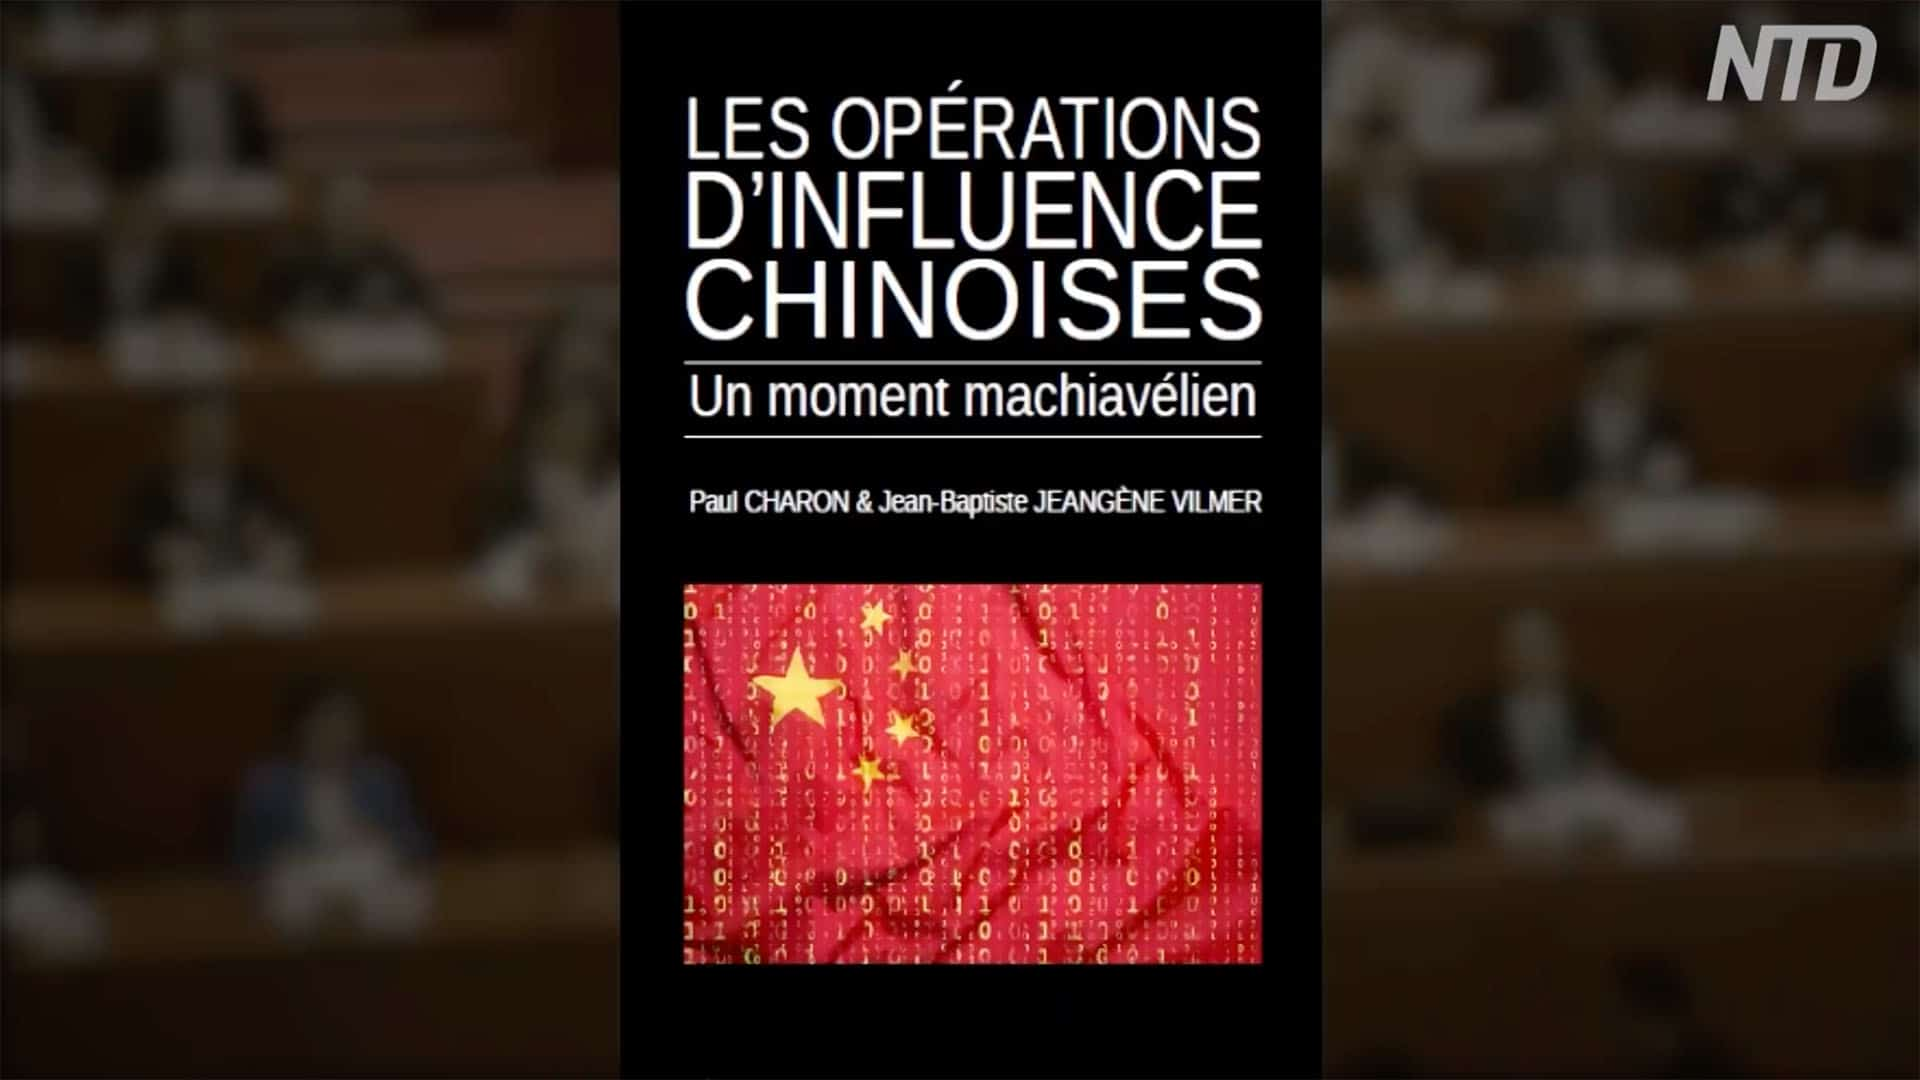 Les opérations d'influence chinoises